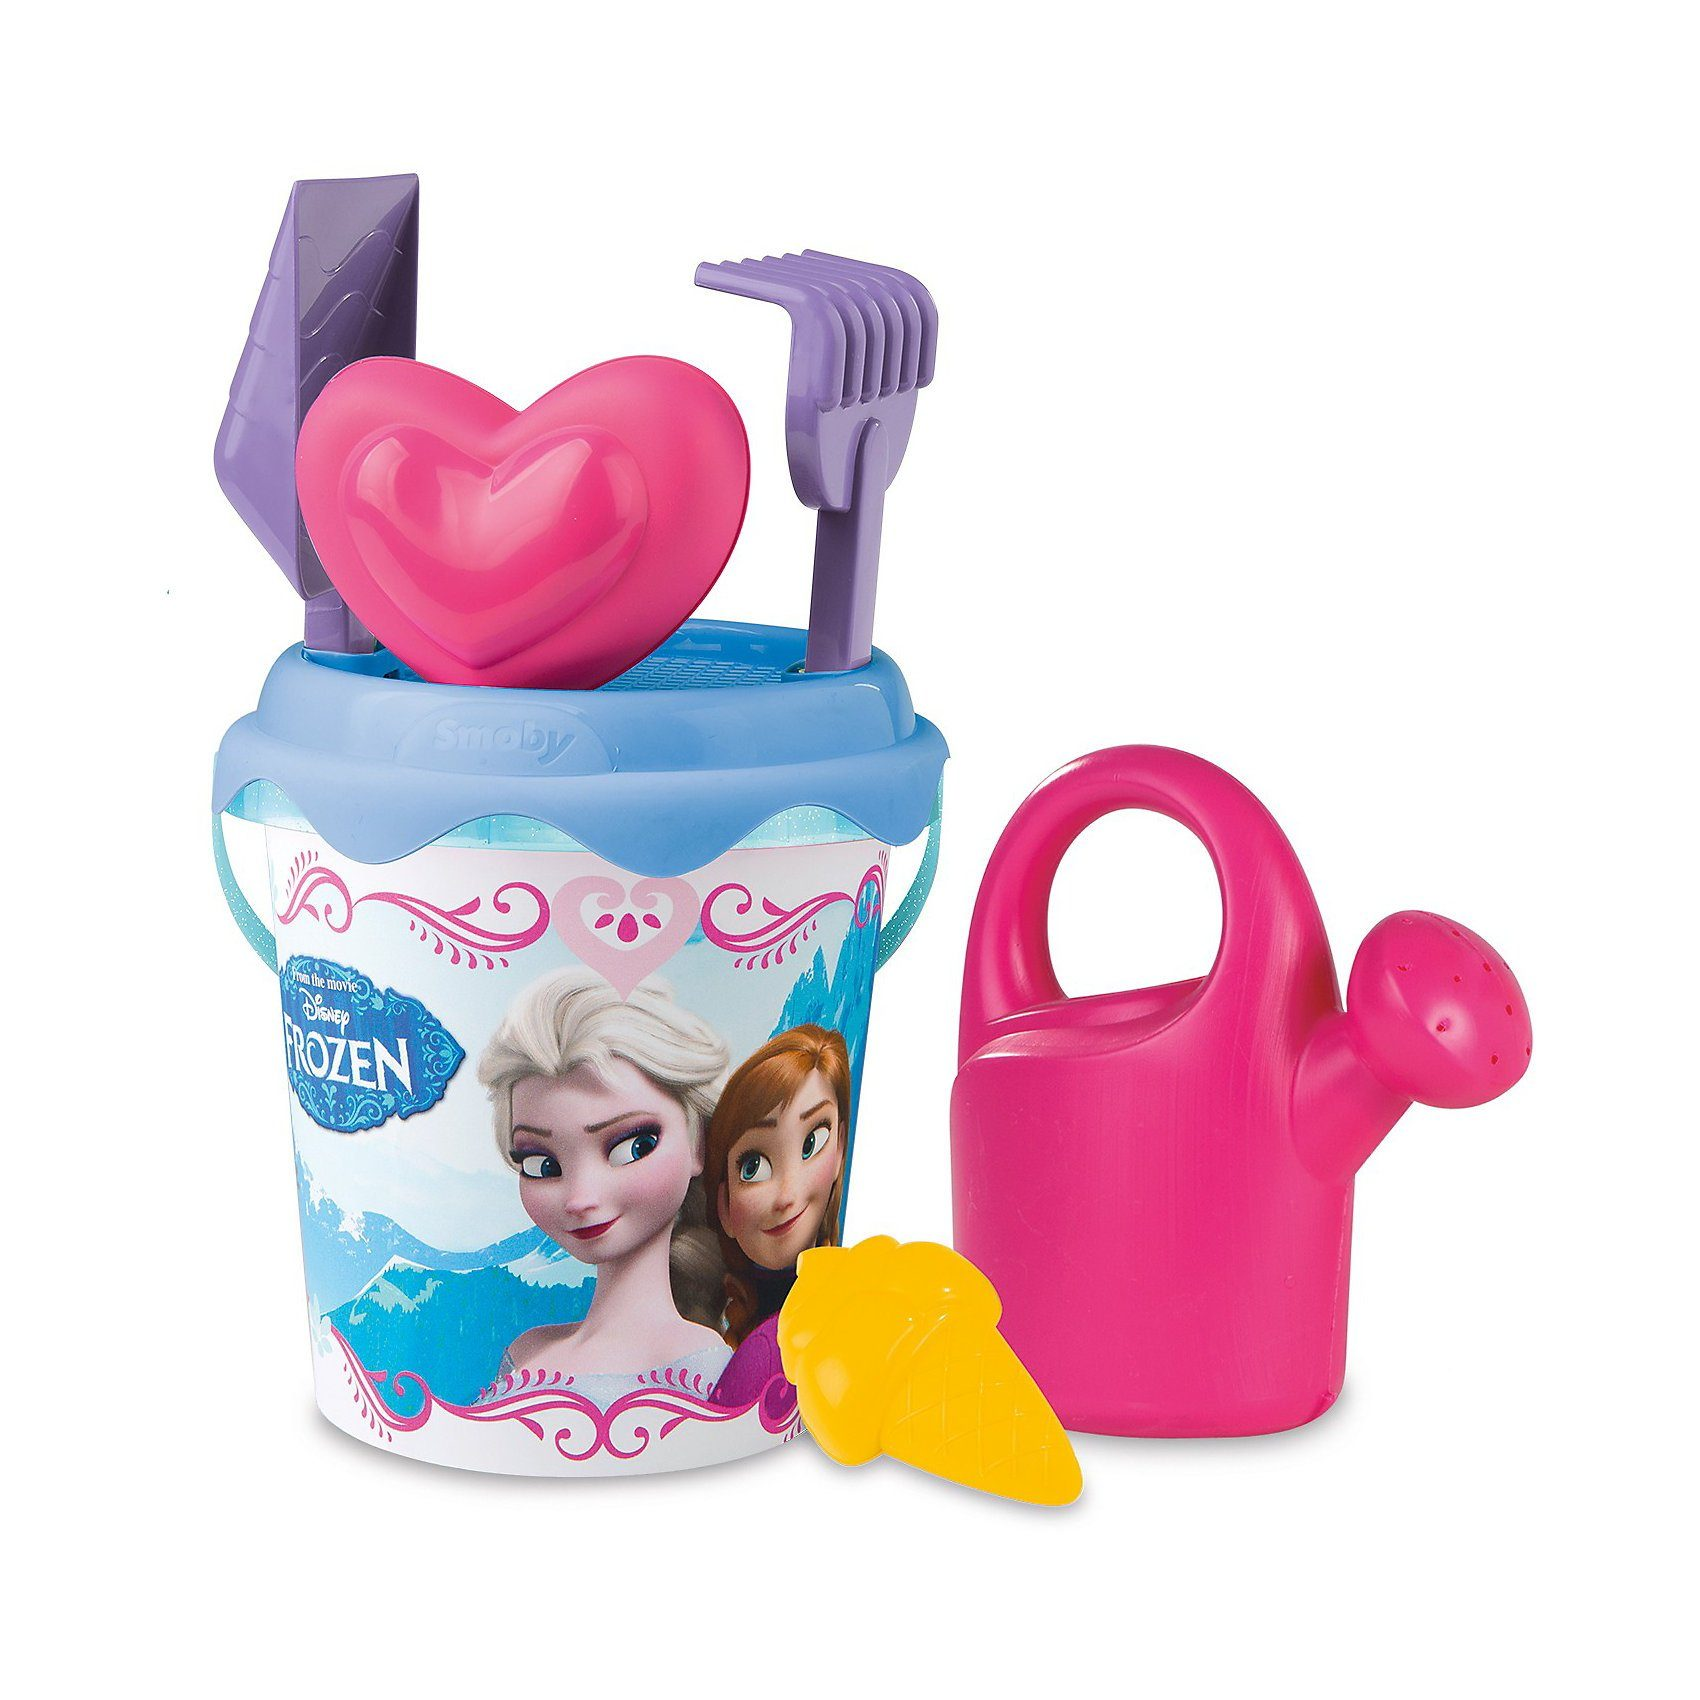 Smoby Eimergarnitur Disney Princess Frozen